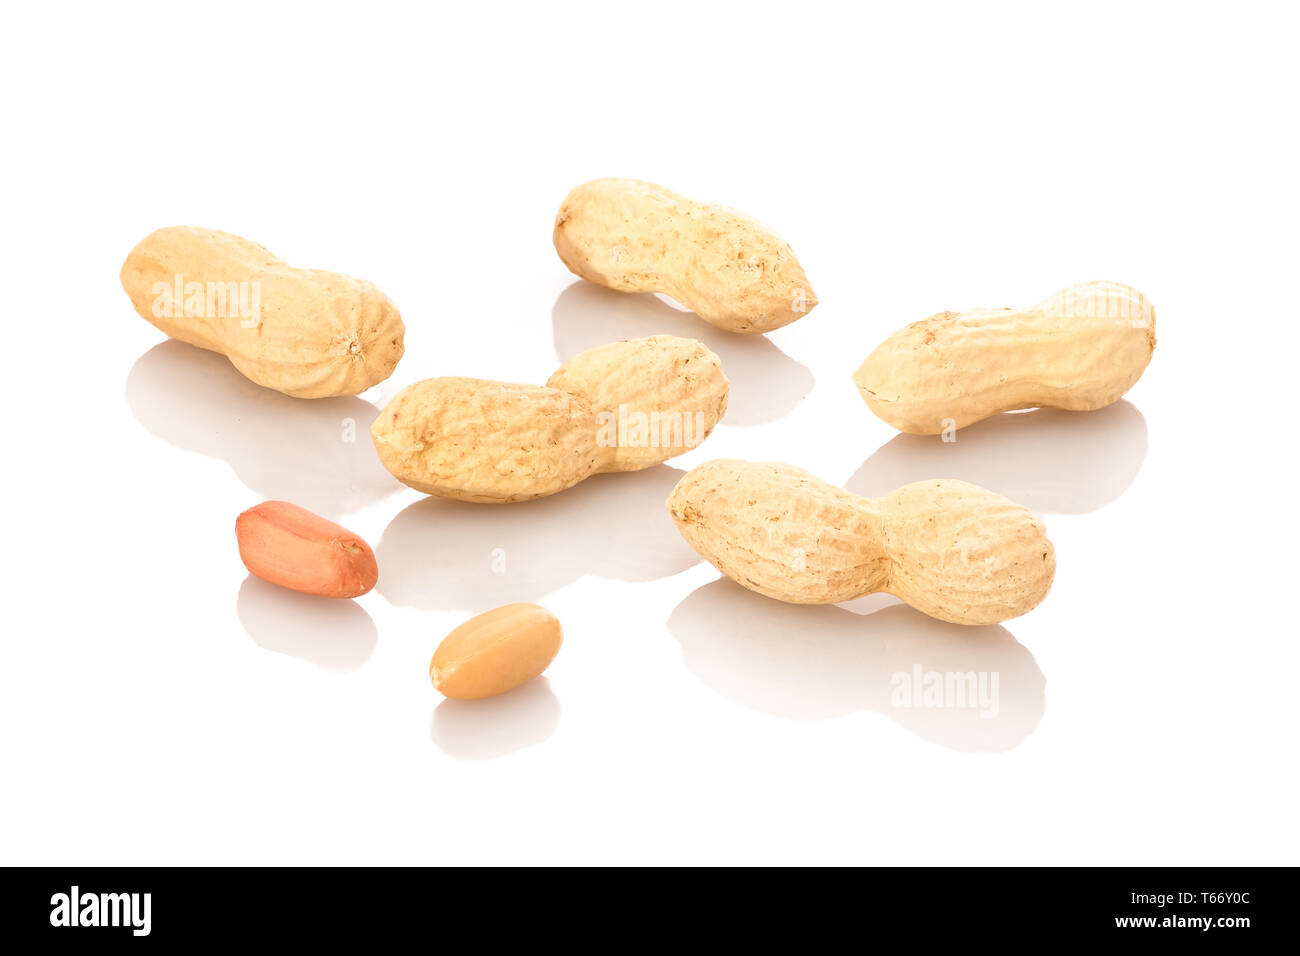 Peanuts With And Without Shell Stock Photos & Peanuts With